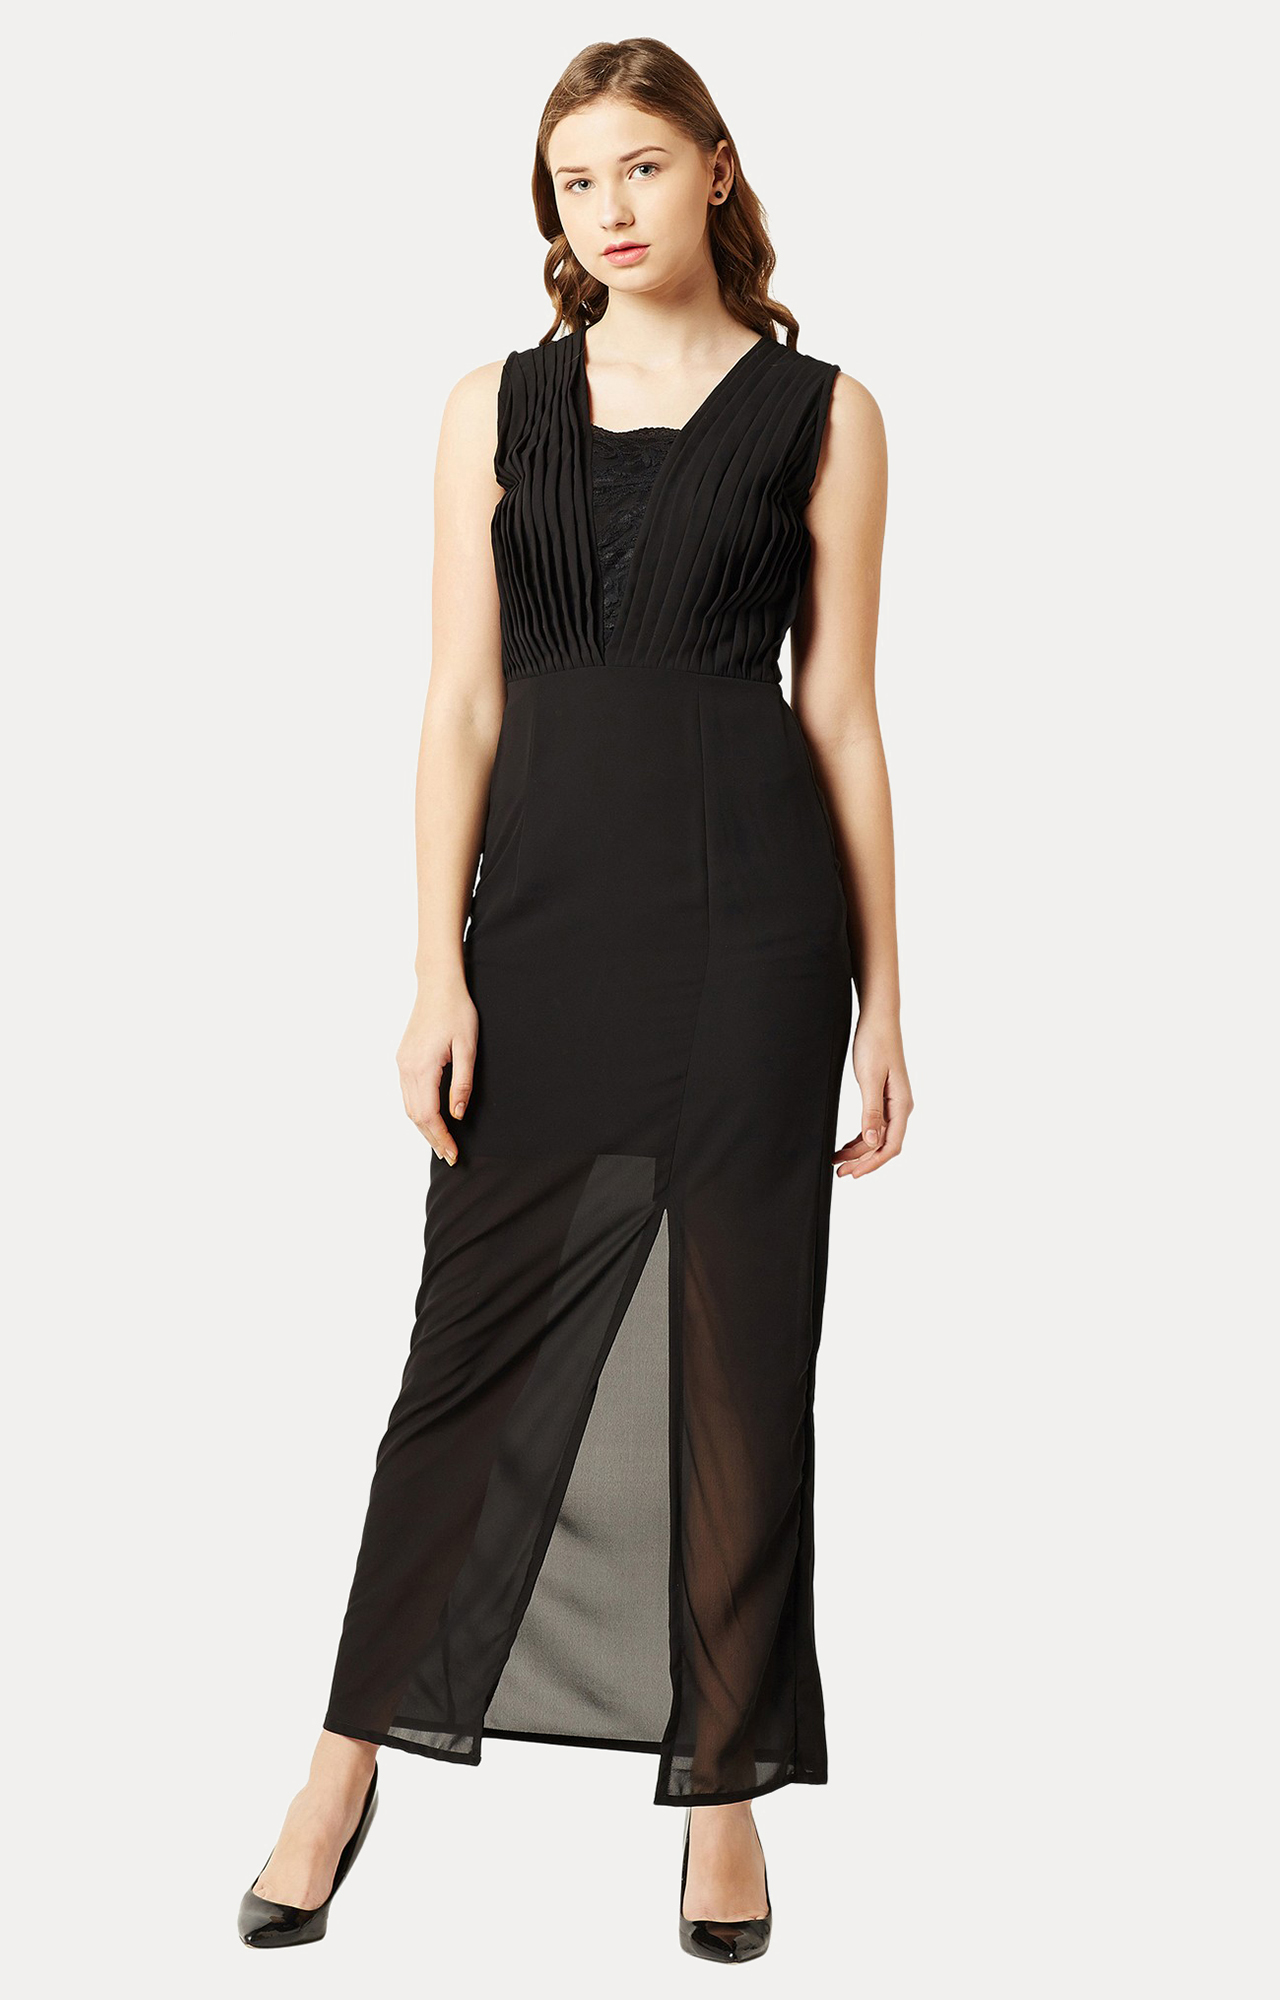 MISS CHASE | Black Solid Lace Maxi Dress